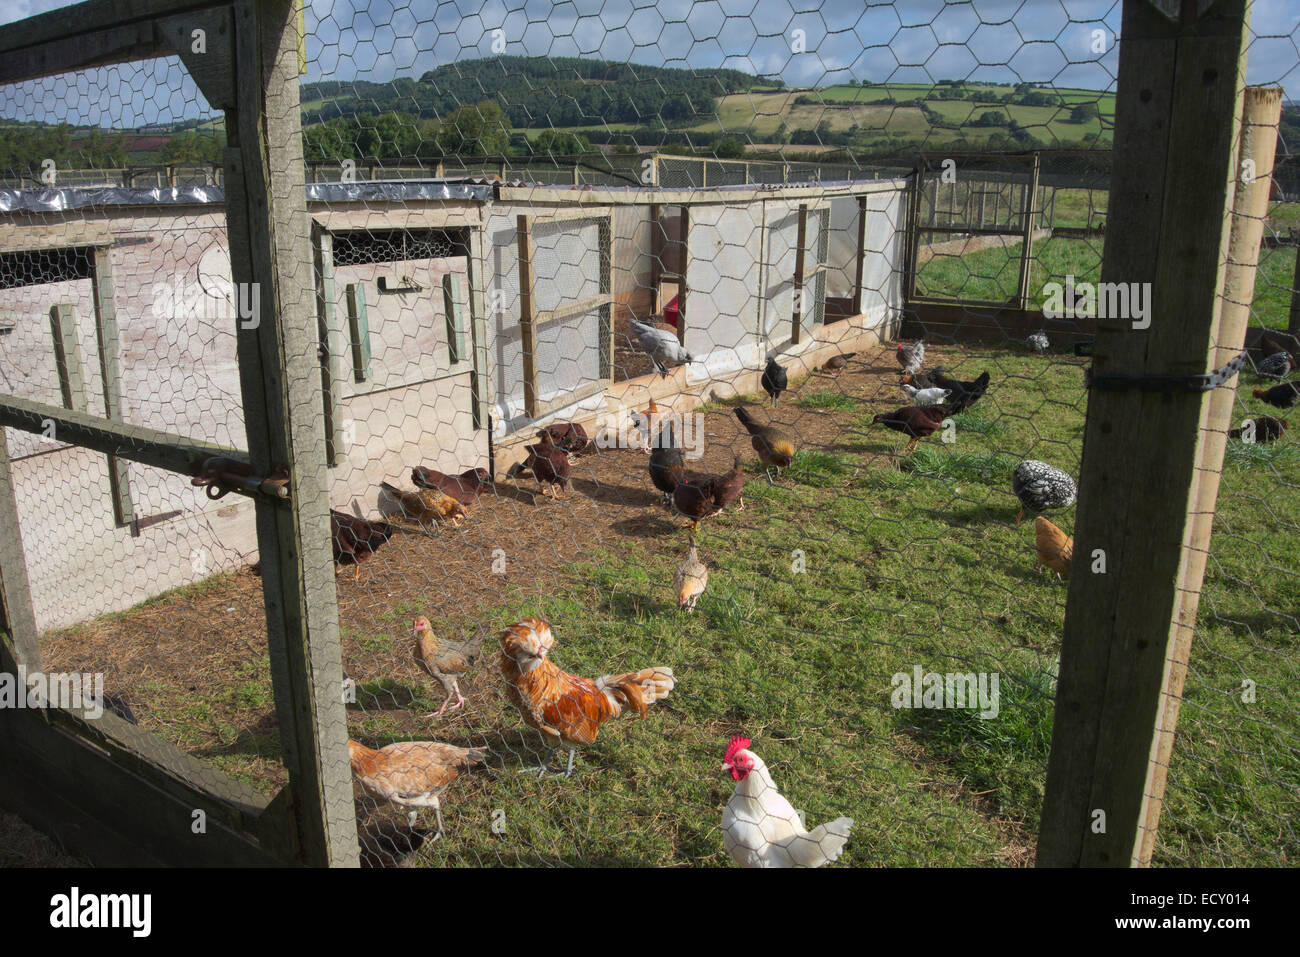 Small poultry breeding unit with outside pens - Brendon Hills Somerset - Stock Image